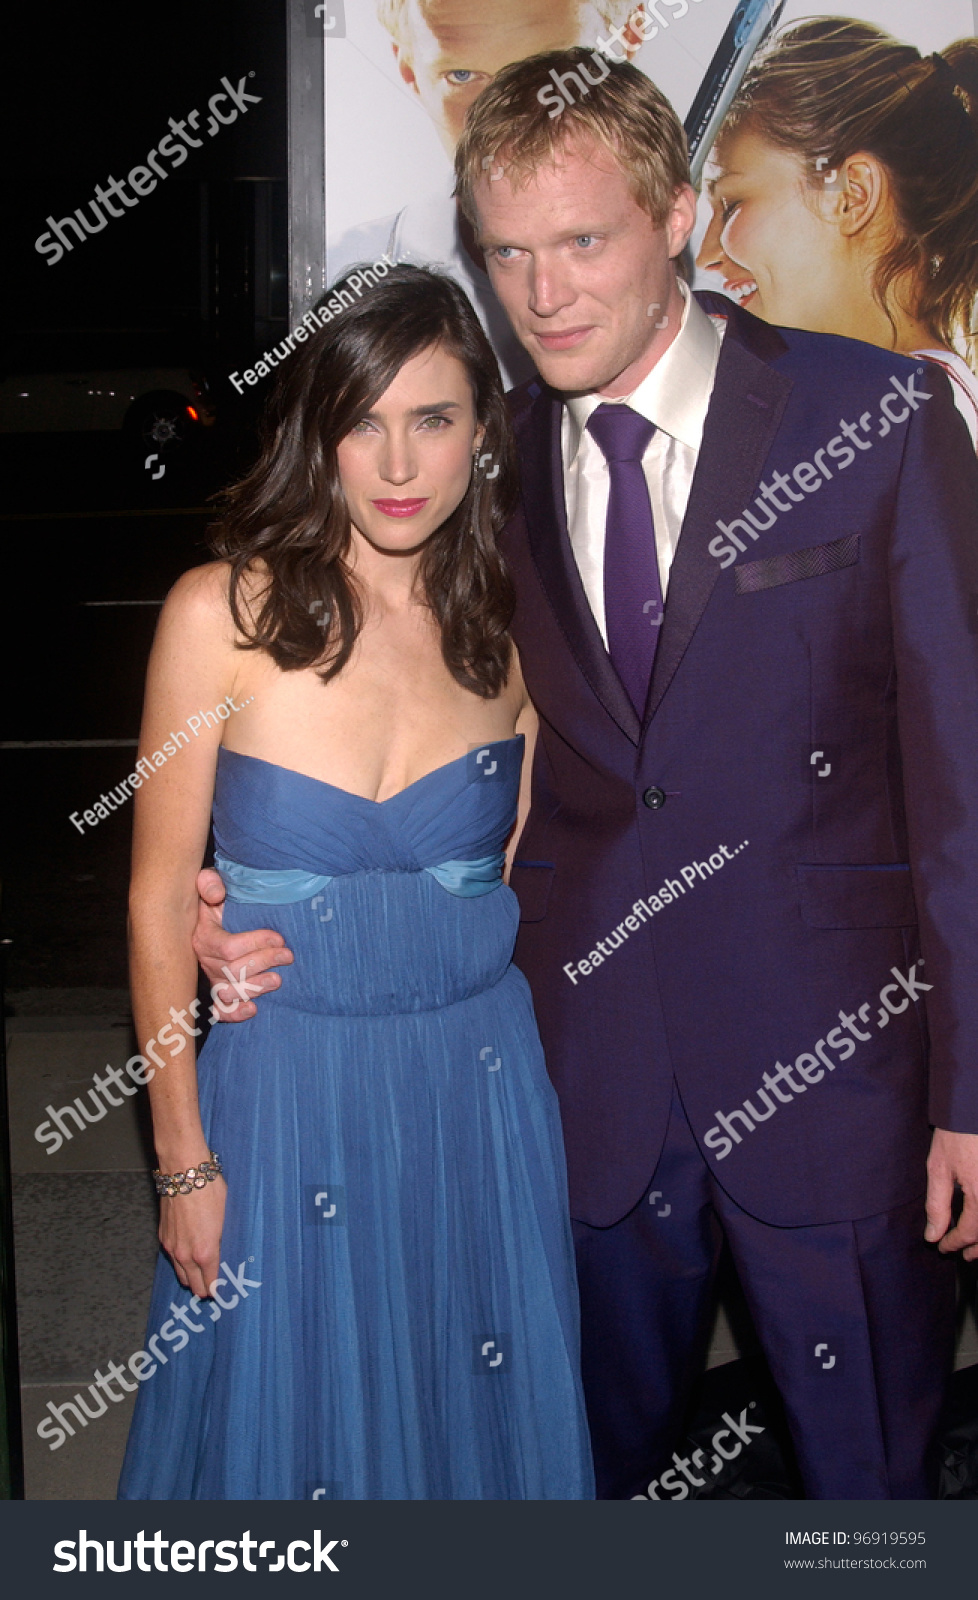 actor paul bettany wife actress jennifer stock photo 96919595 shutterstock. Black Bedroom Furniture Sets. Home Design Ideas